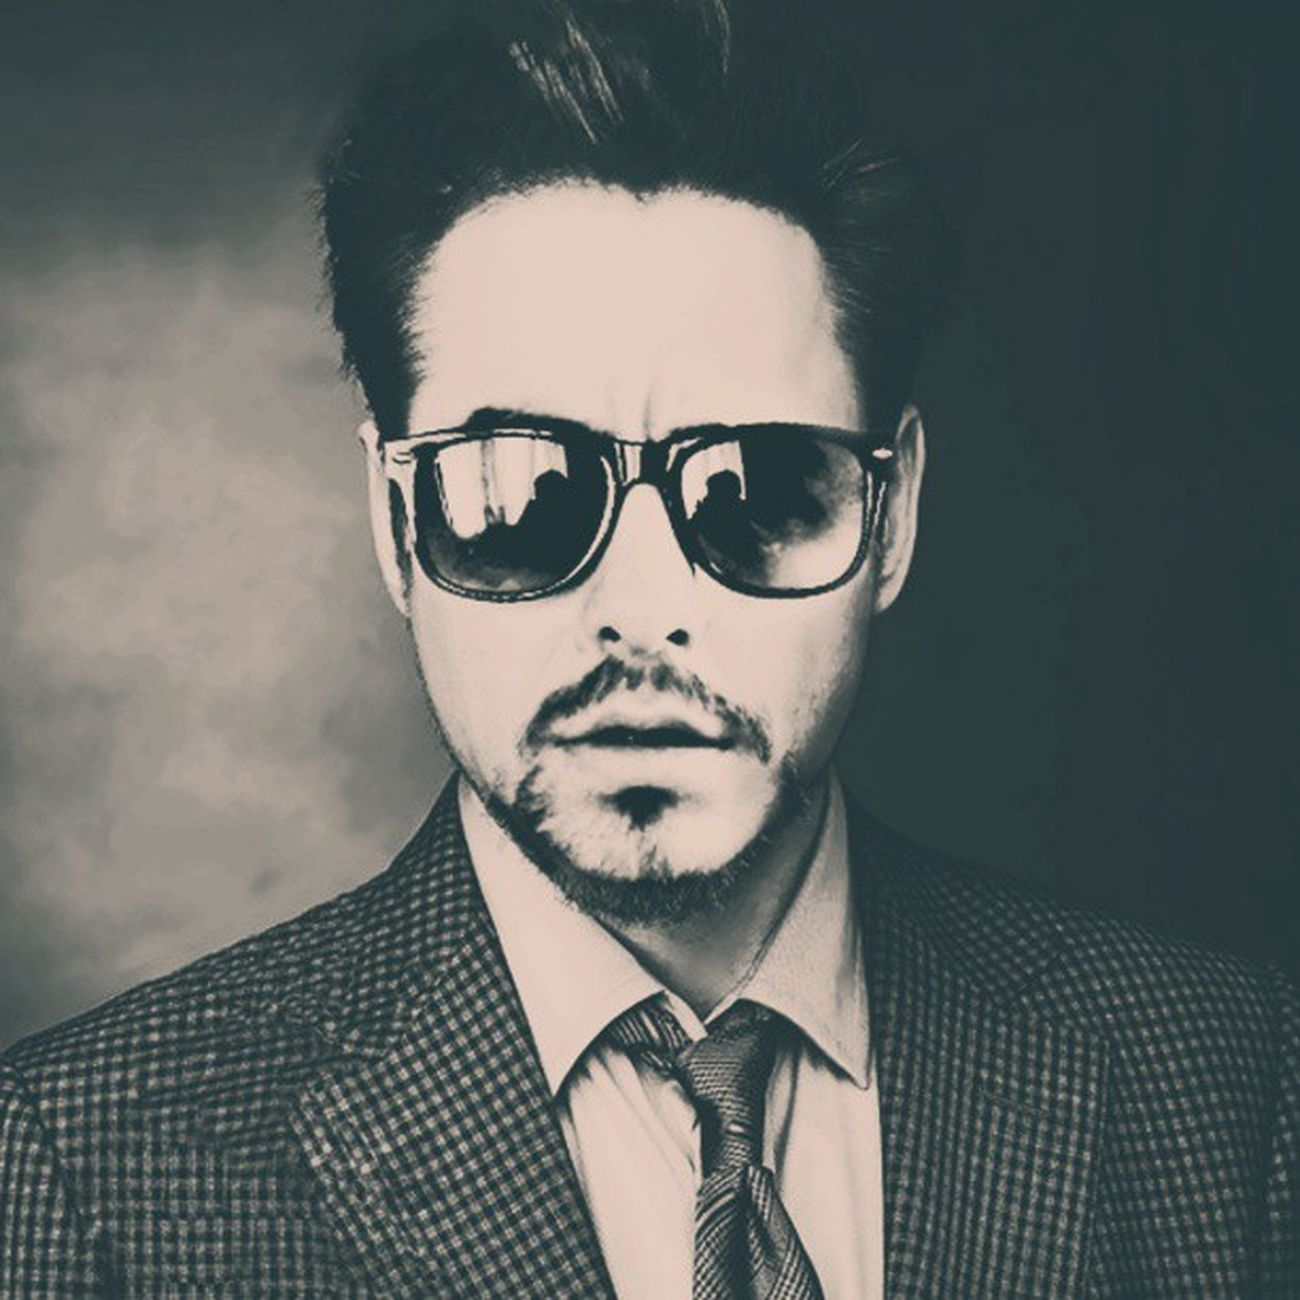 RobertDowney Instagram Graphic Photoshop edit cool handsome ironman rayban photoedit instagram smoke life